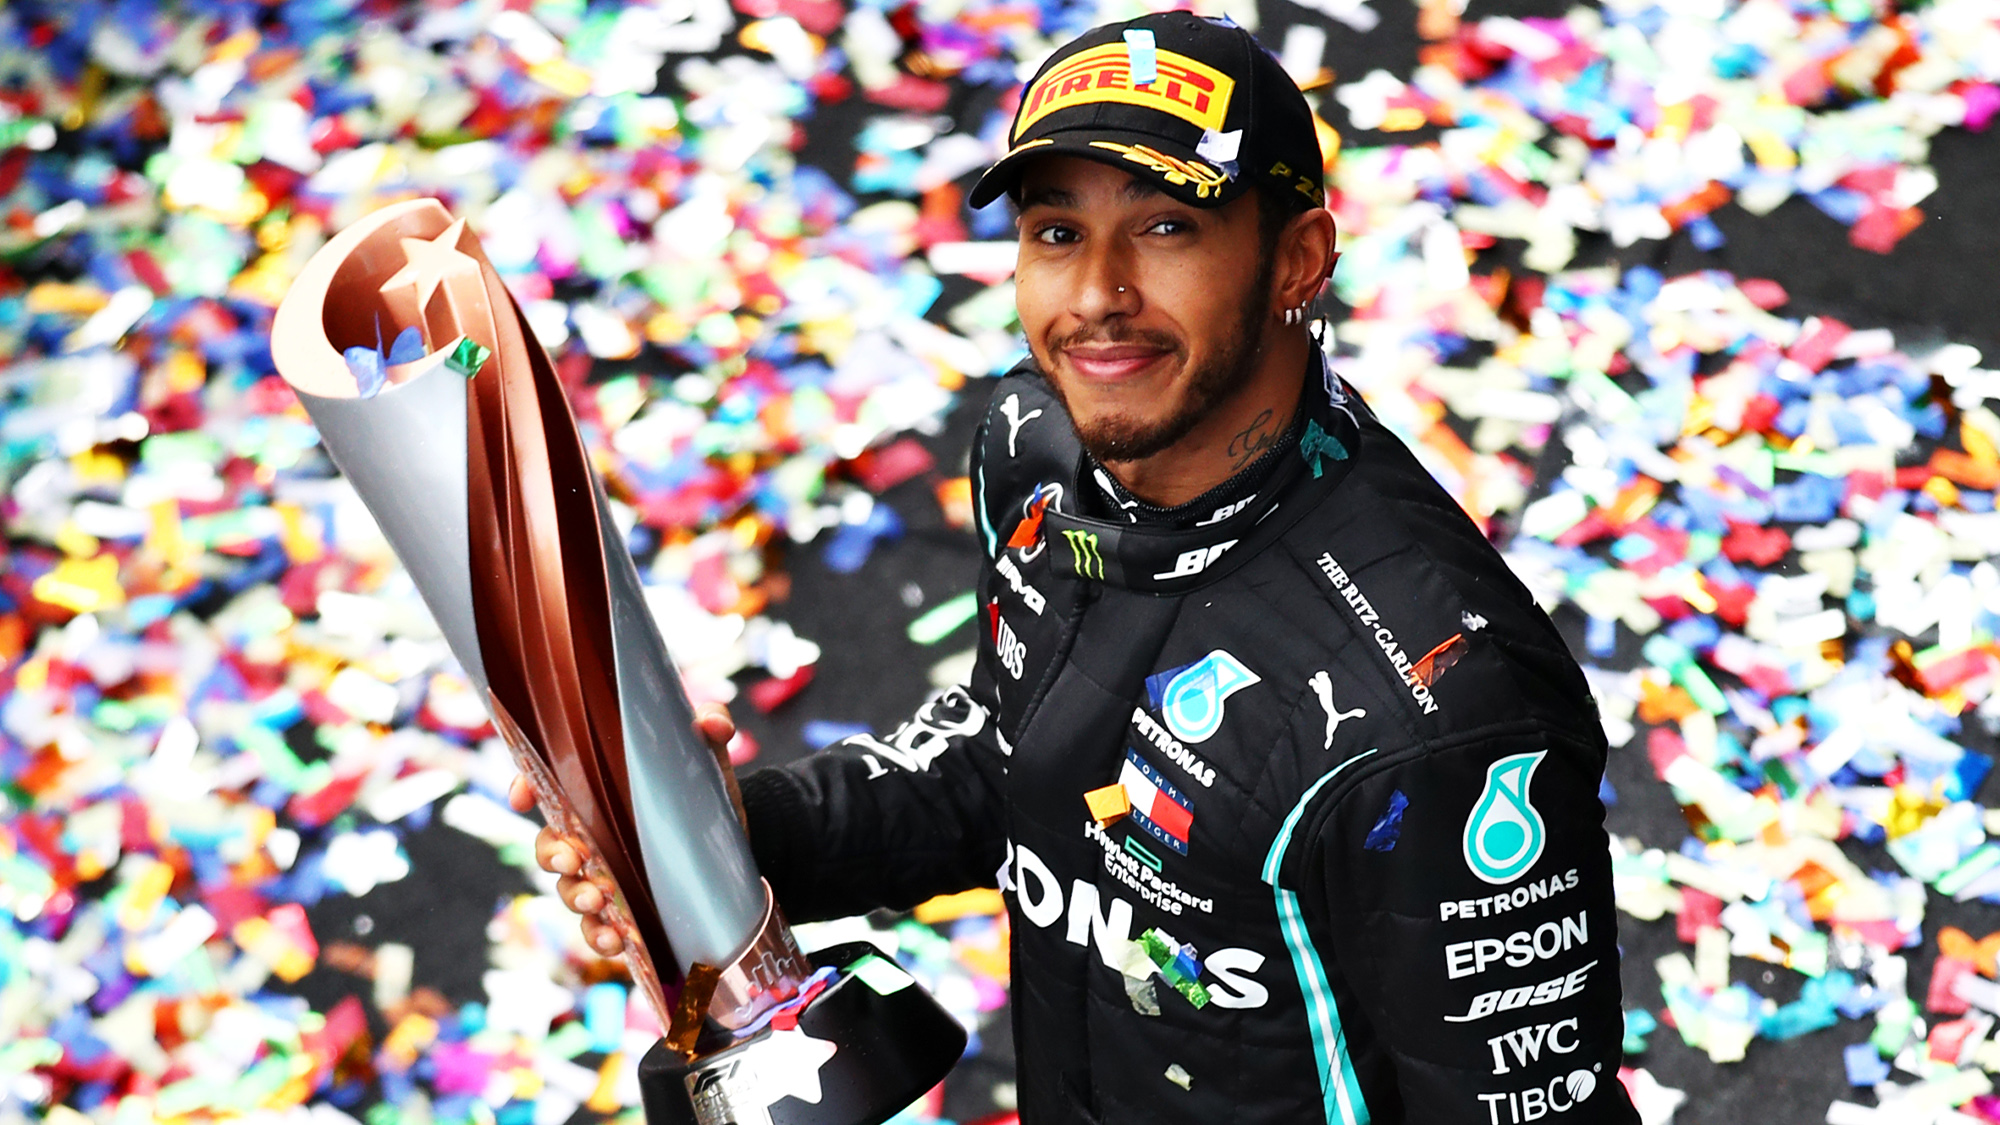 Lewis Hamilton holds the winner's trophy from the 2020 F1 Turkish Grand Prix where he won his 7th F1 world championship